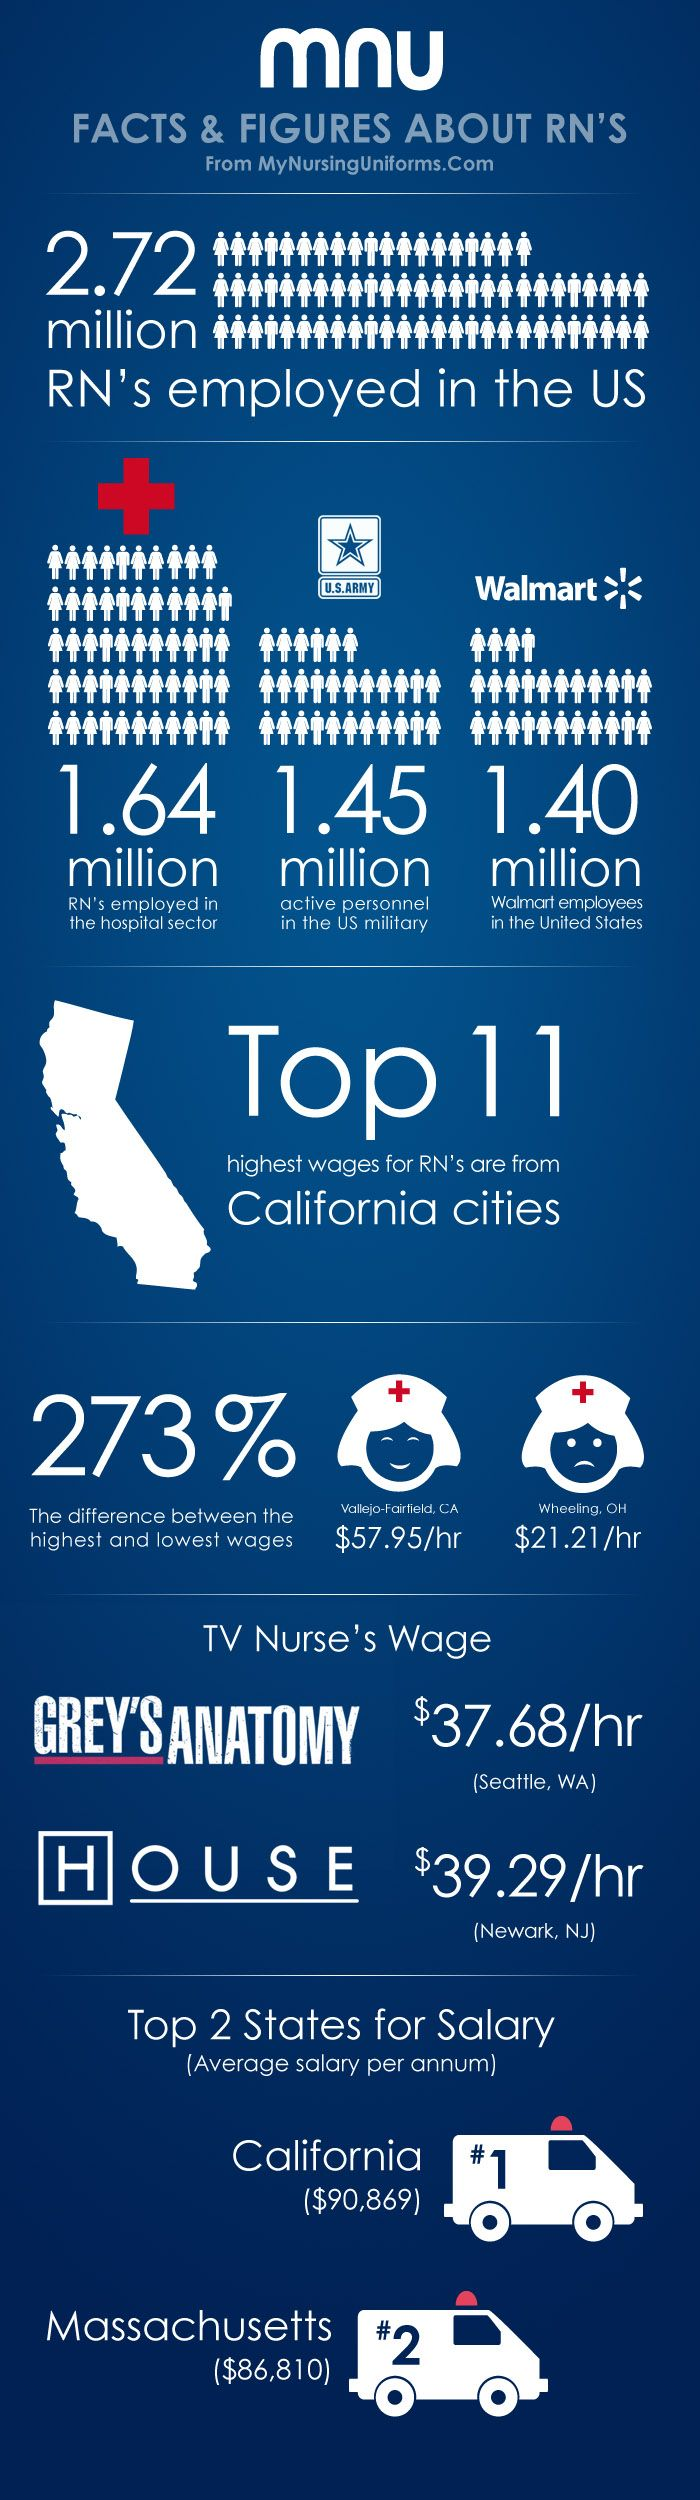 Submit Infographics  Free Infographic Tools  Design Agencies & Designers  Enter Giveaway!  Infographic Categories  INFOGRAPHIC: HOW MUCH MONEY DO REGISTERED NURSES MAKE IN THE US?